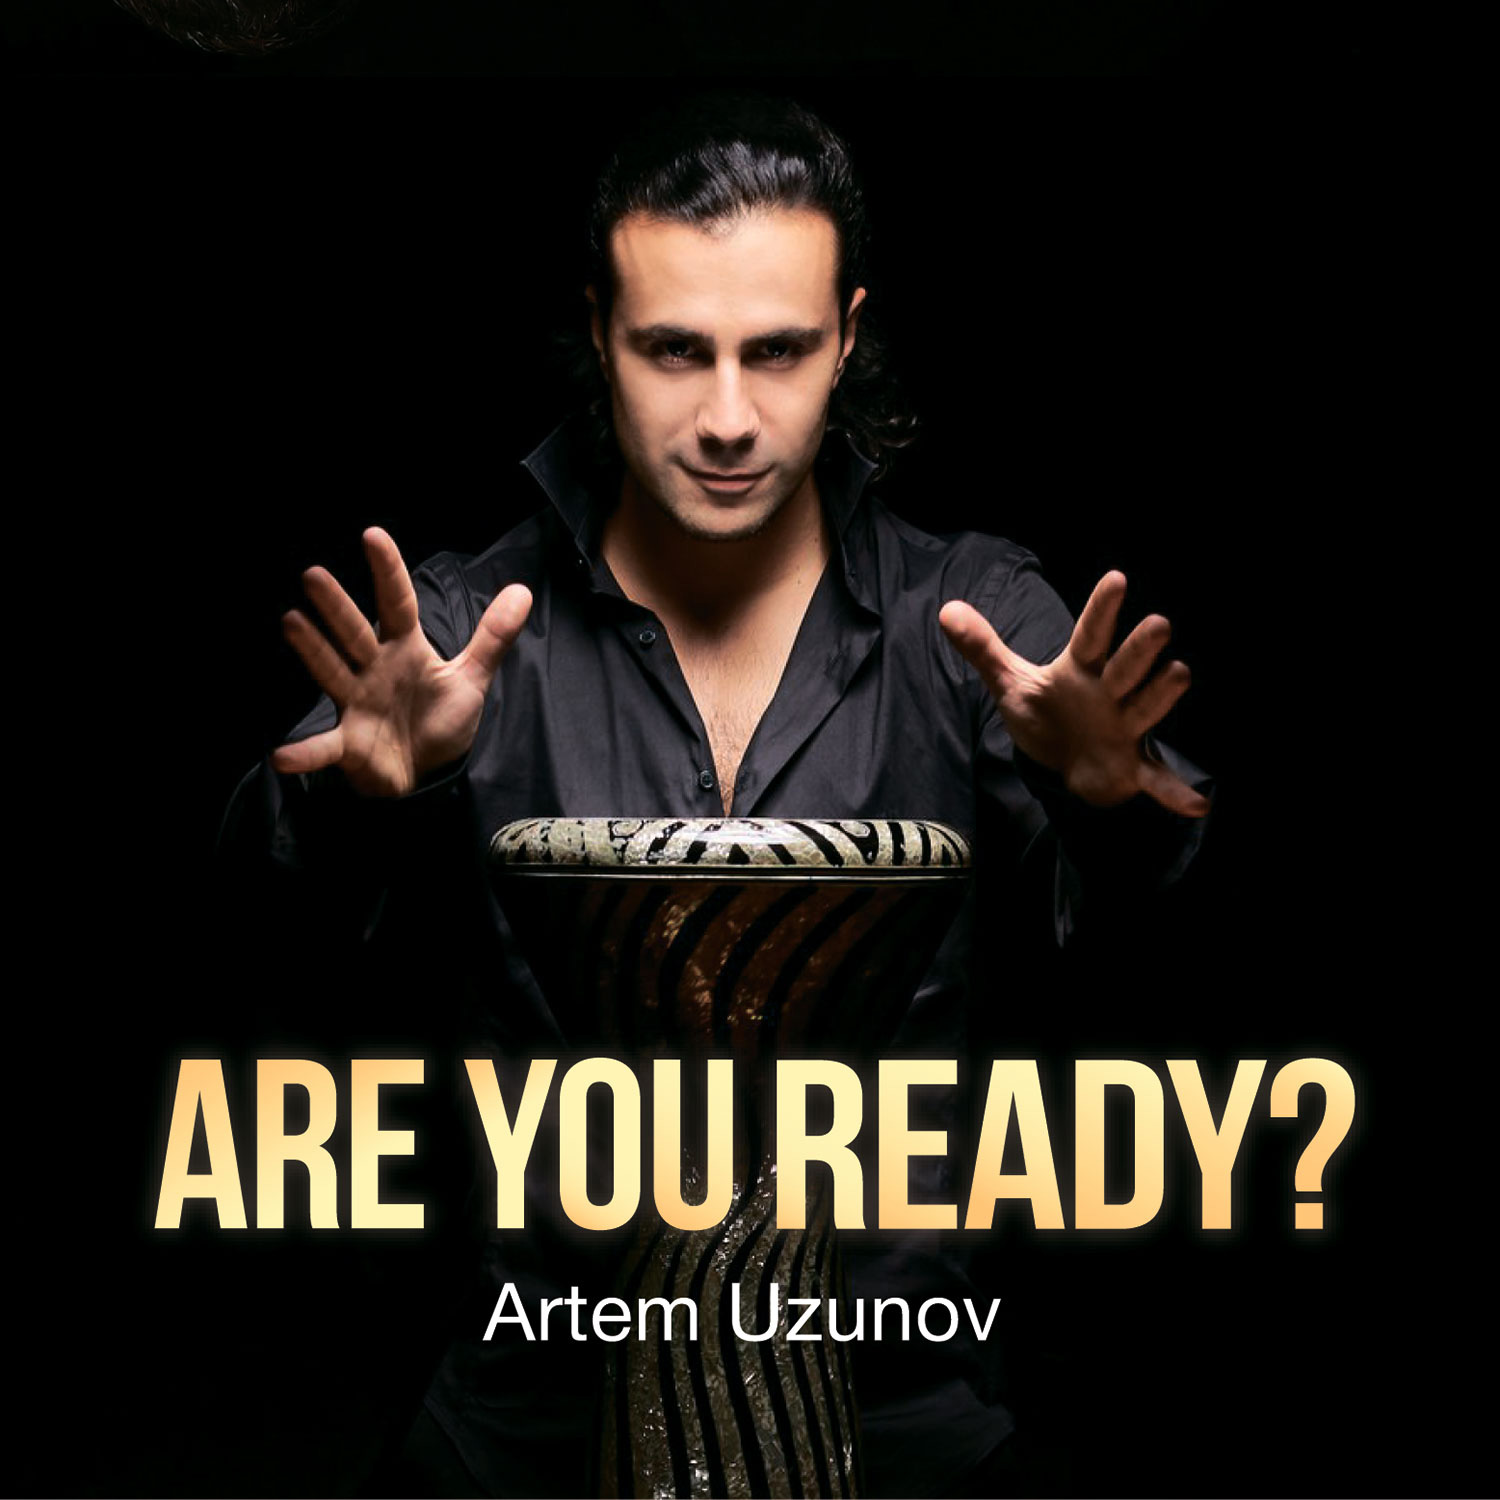 Артем Узунов Uzunov Artem. Are You Ready?